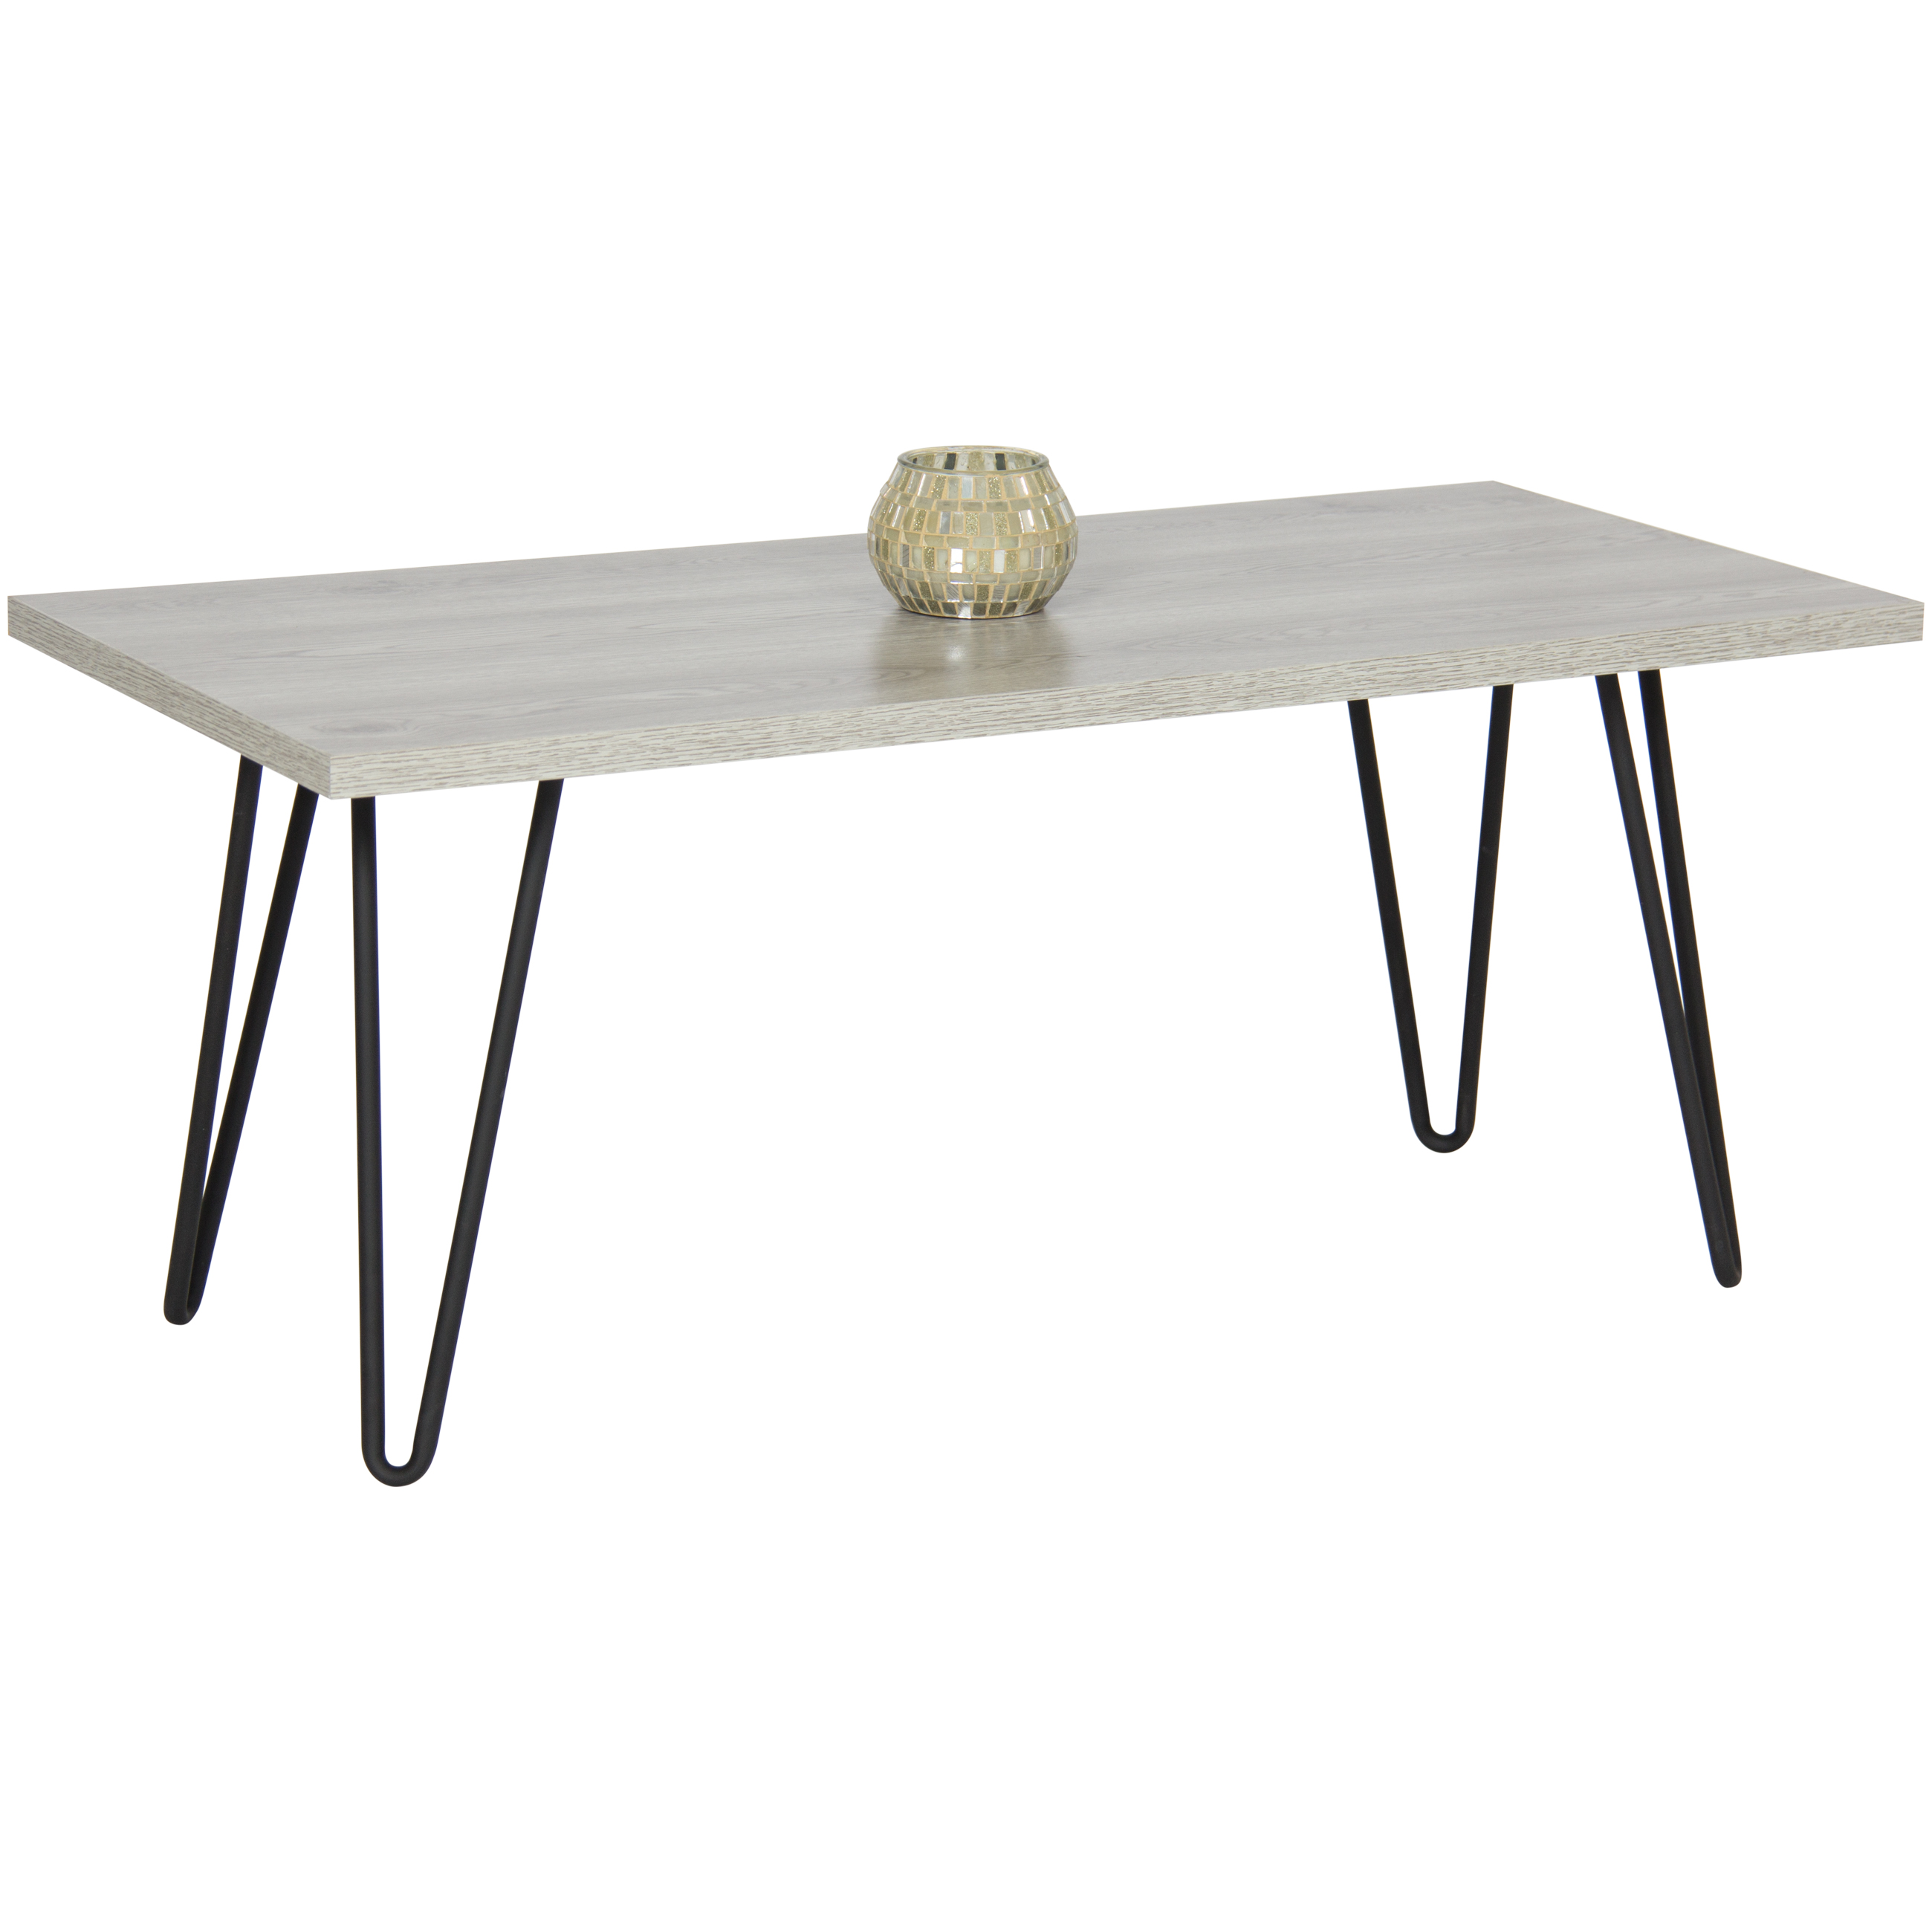 Charmant Best Choice Products Coffee Table W/ Metal Hairpin Legs